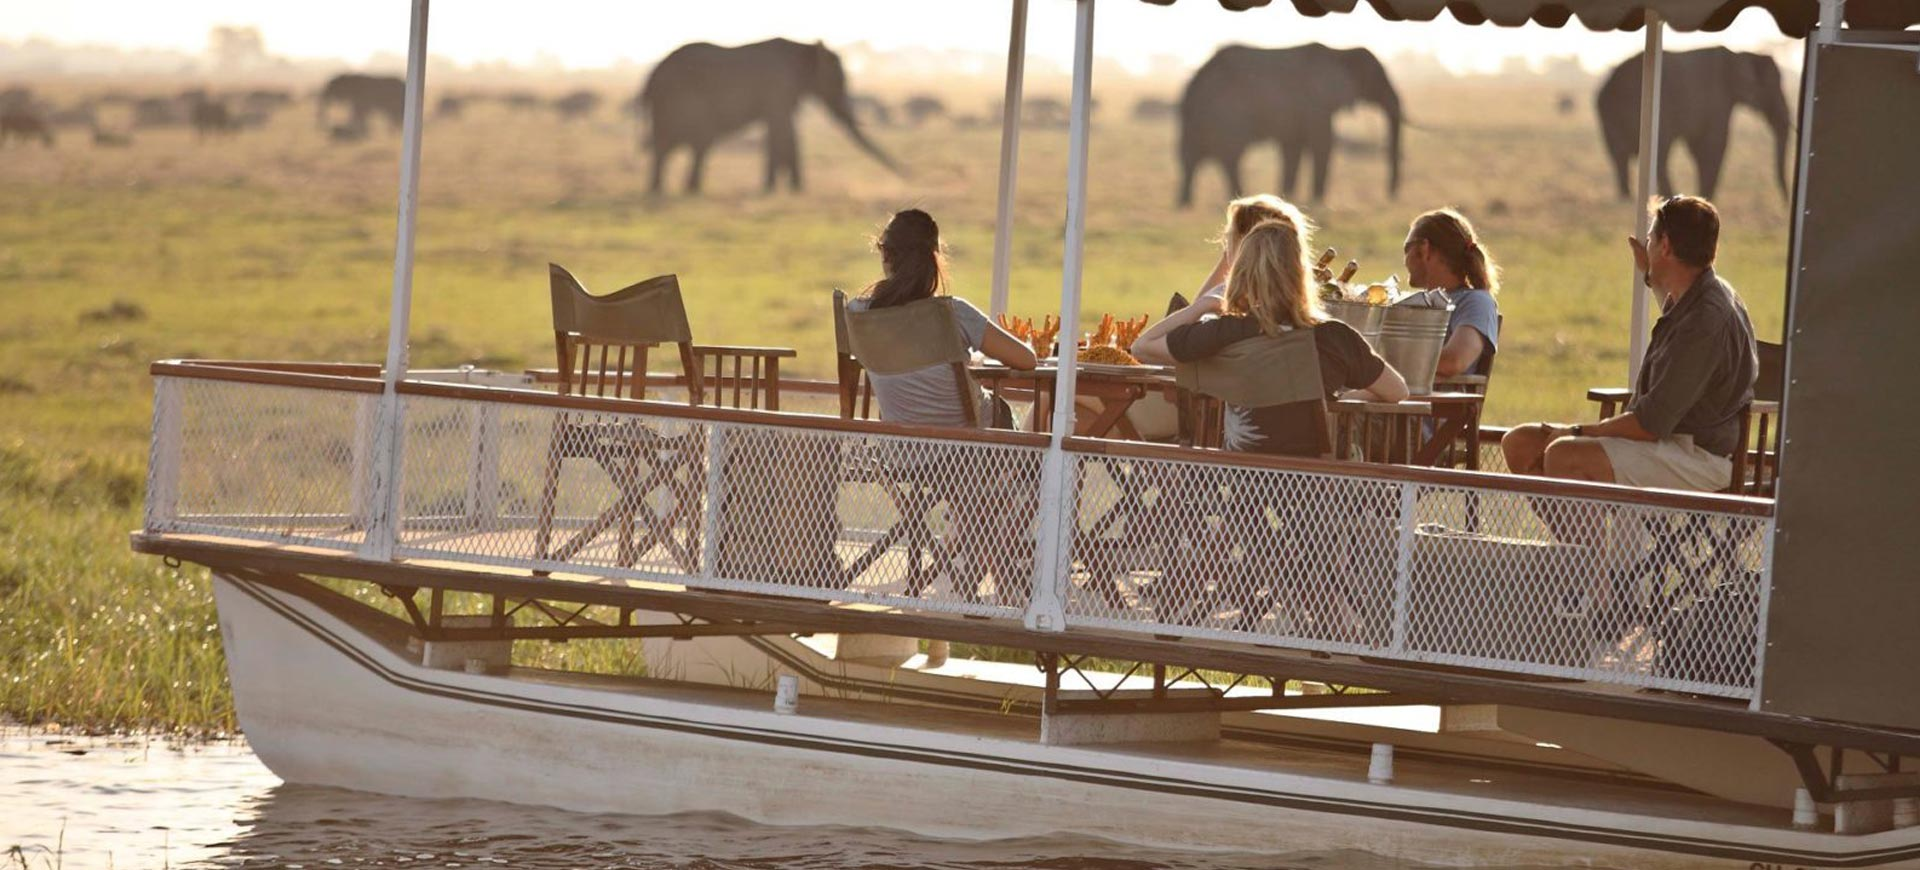 Chobe Safari River Cruise